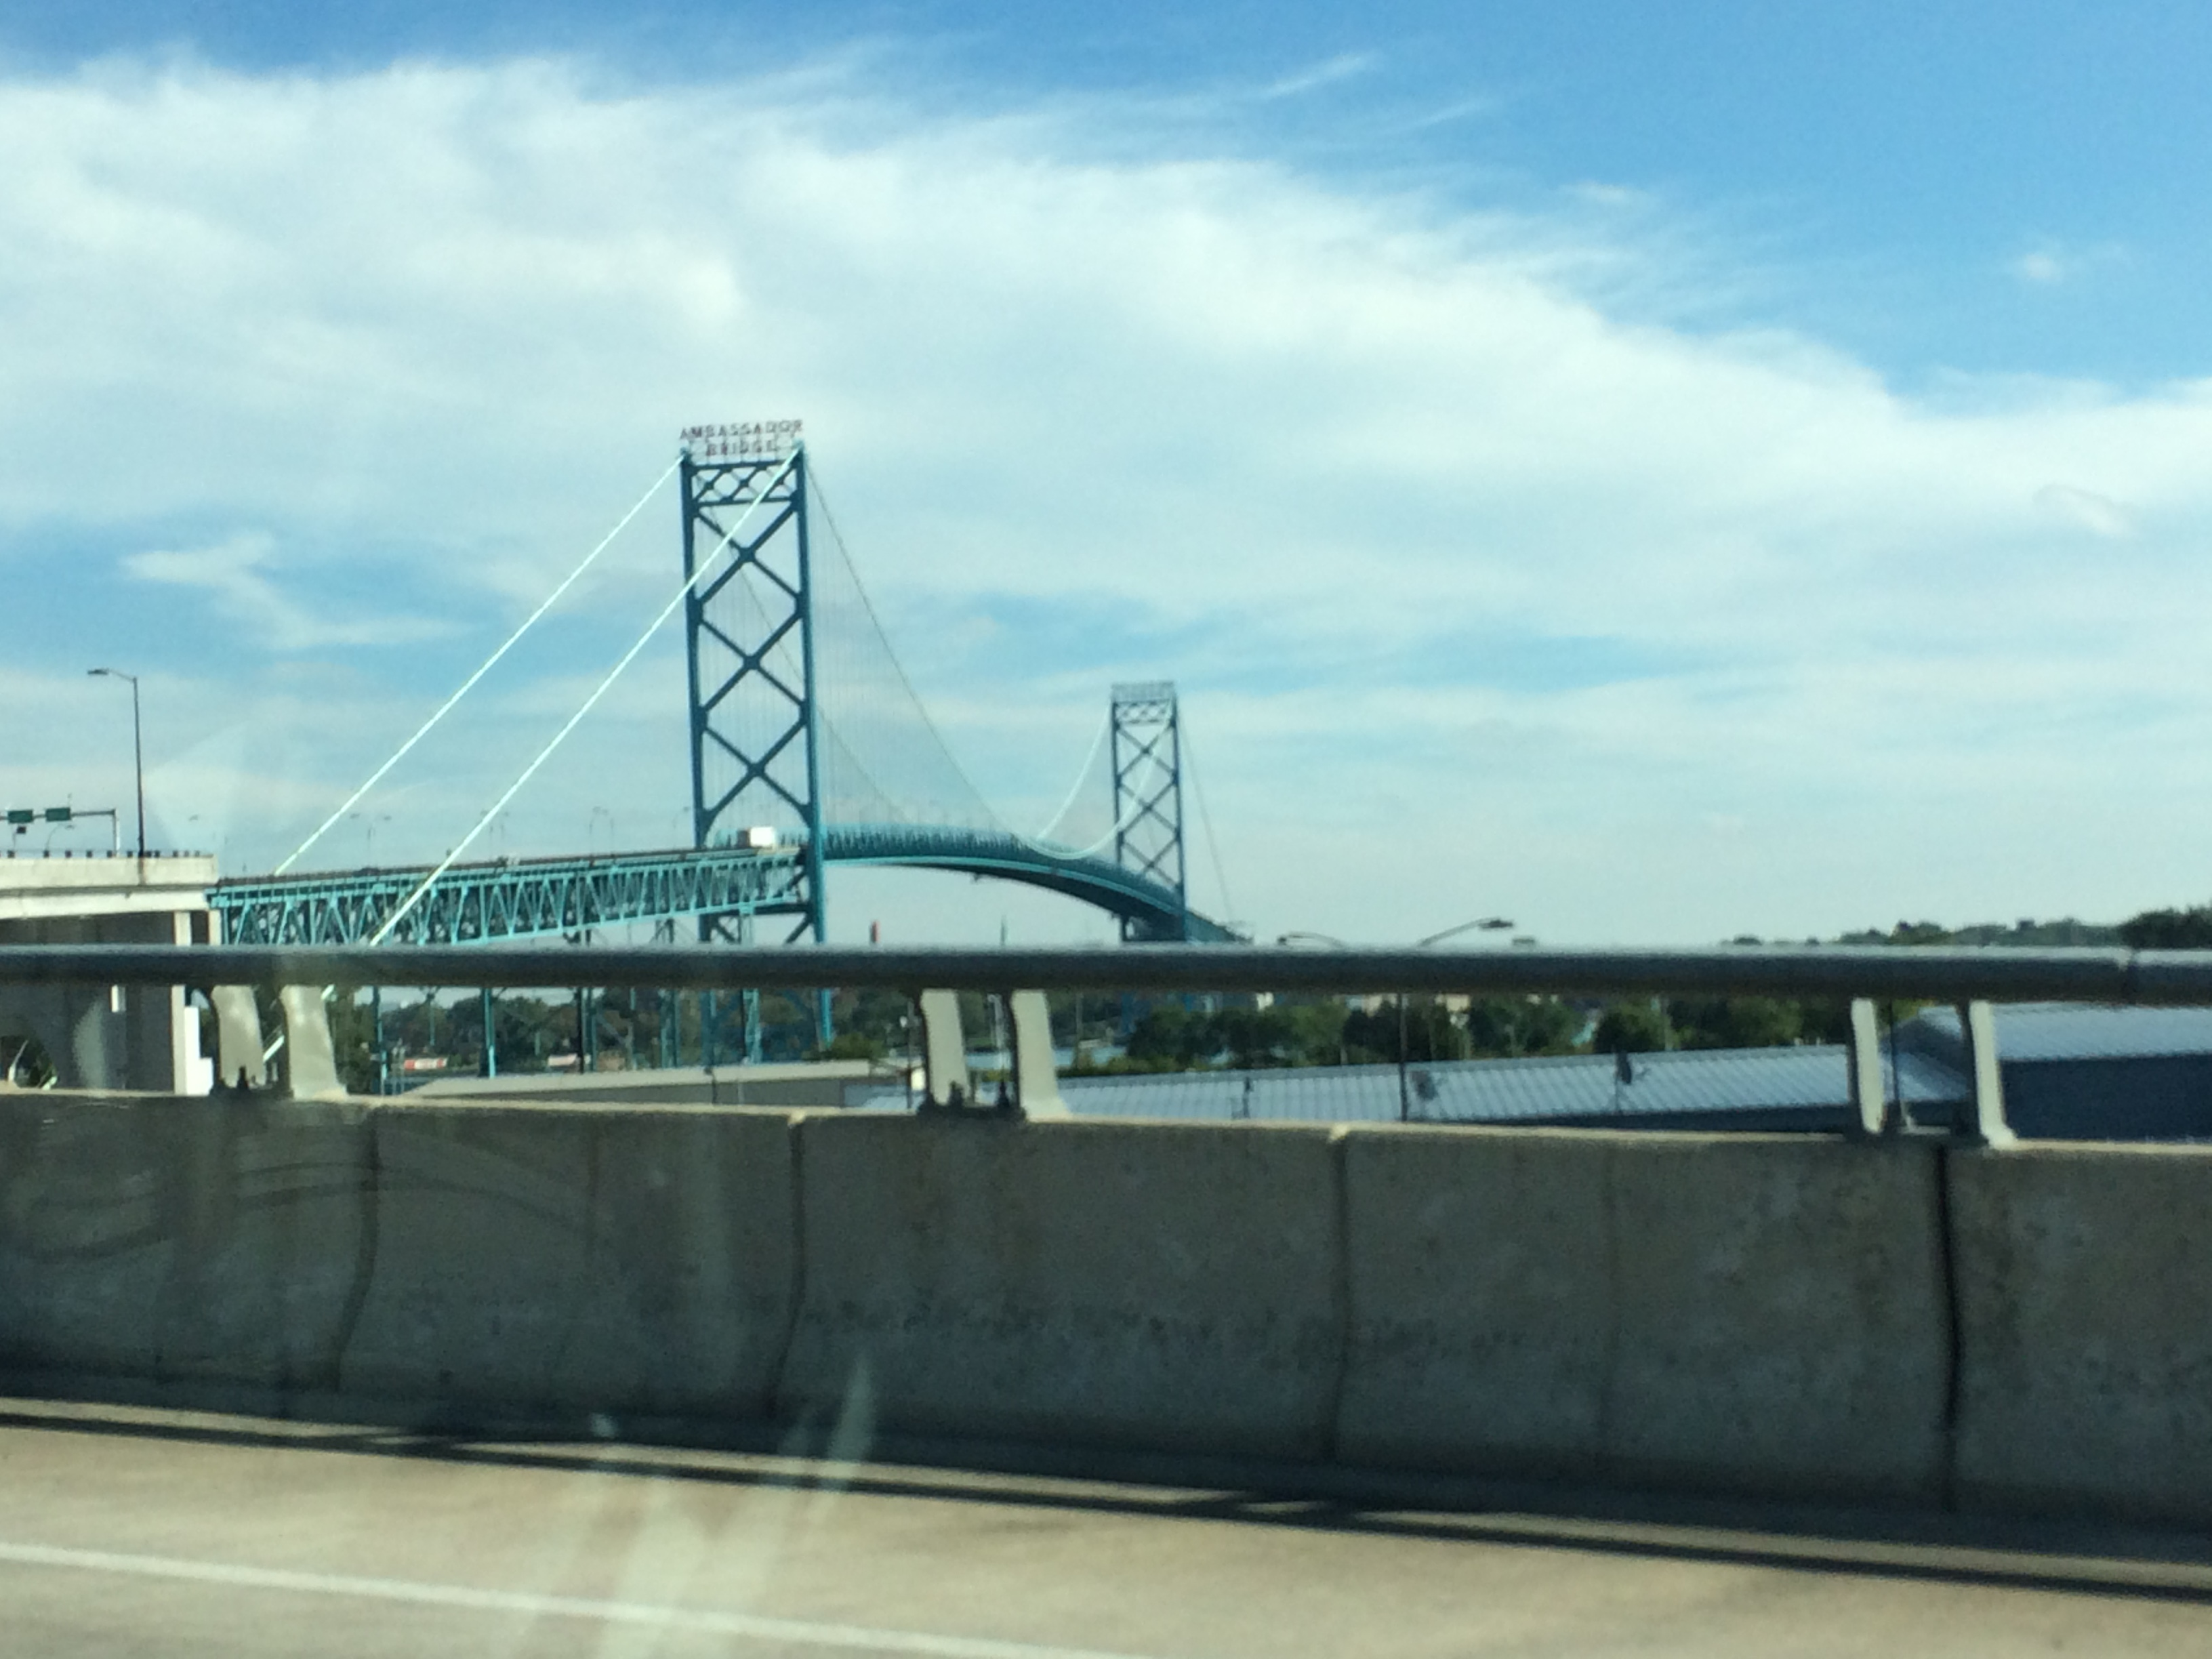 0006 2015-09-18 16.18.33 View of Ambassador Bridge to Canada - Roadtripping to Canada with David and Susie